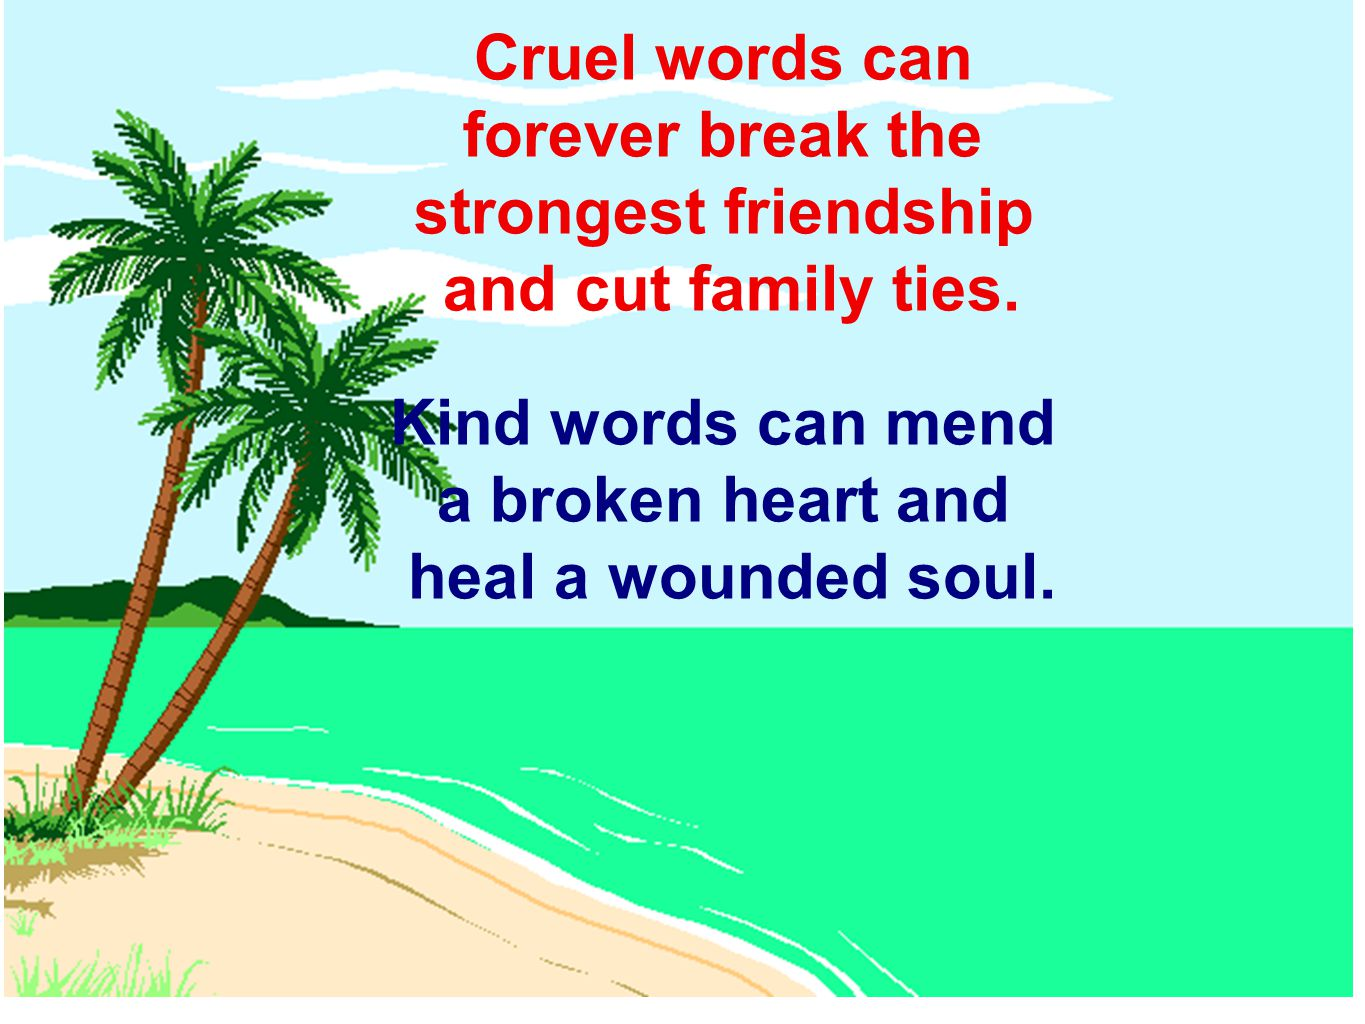 Cruel words can forever break the strongest friendship and cut family ties.